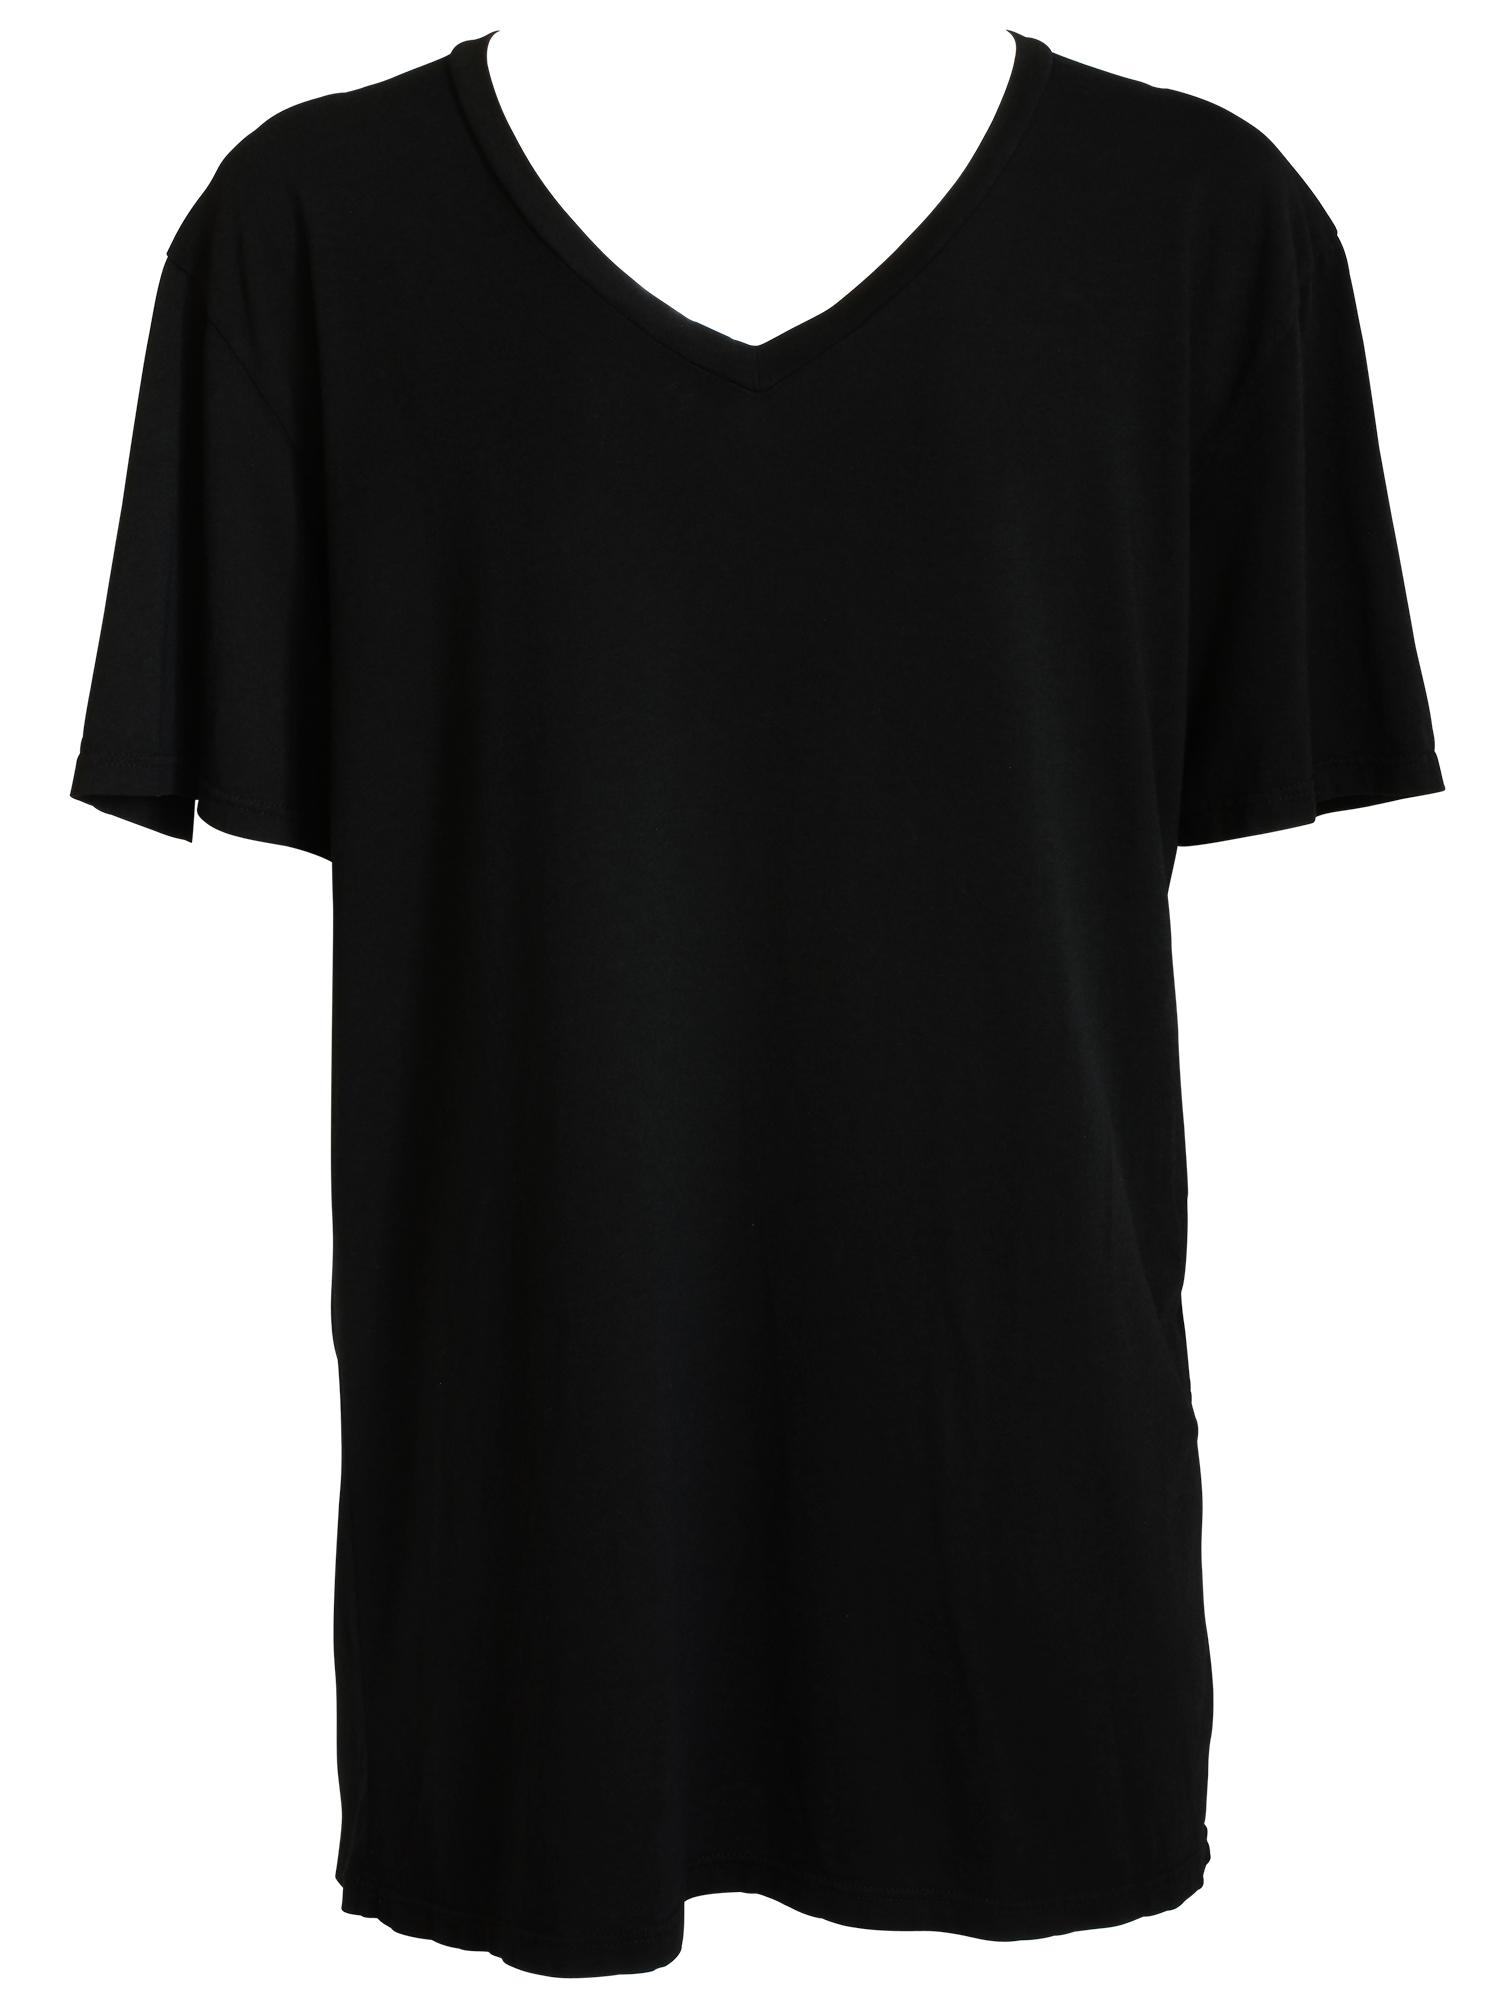 Short-Sleeved V-Neck Tee | Fashioning Change ®